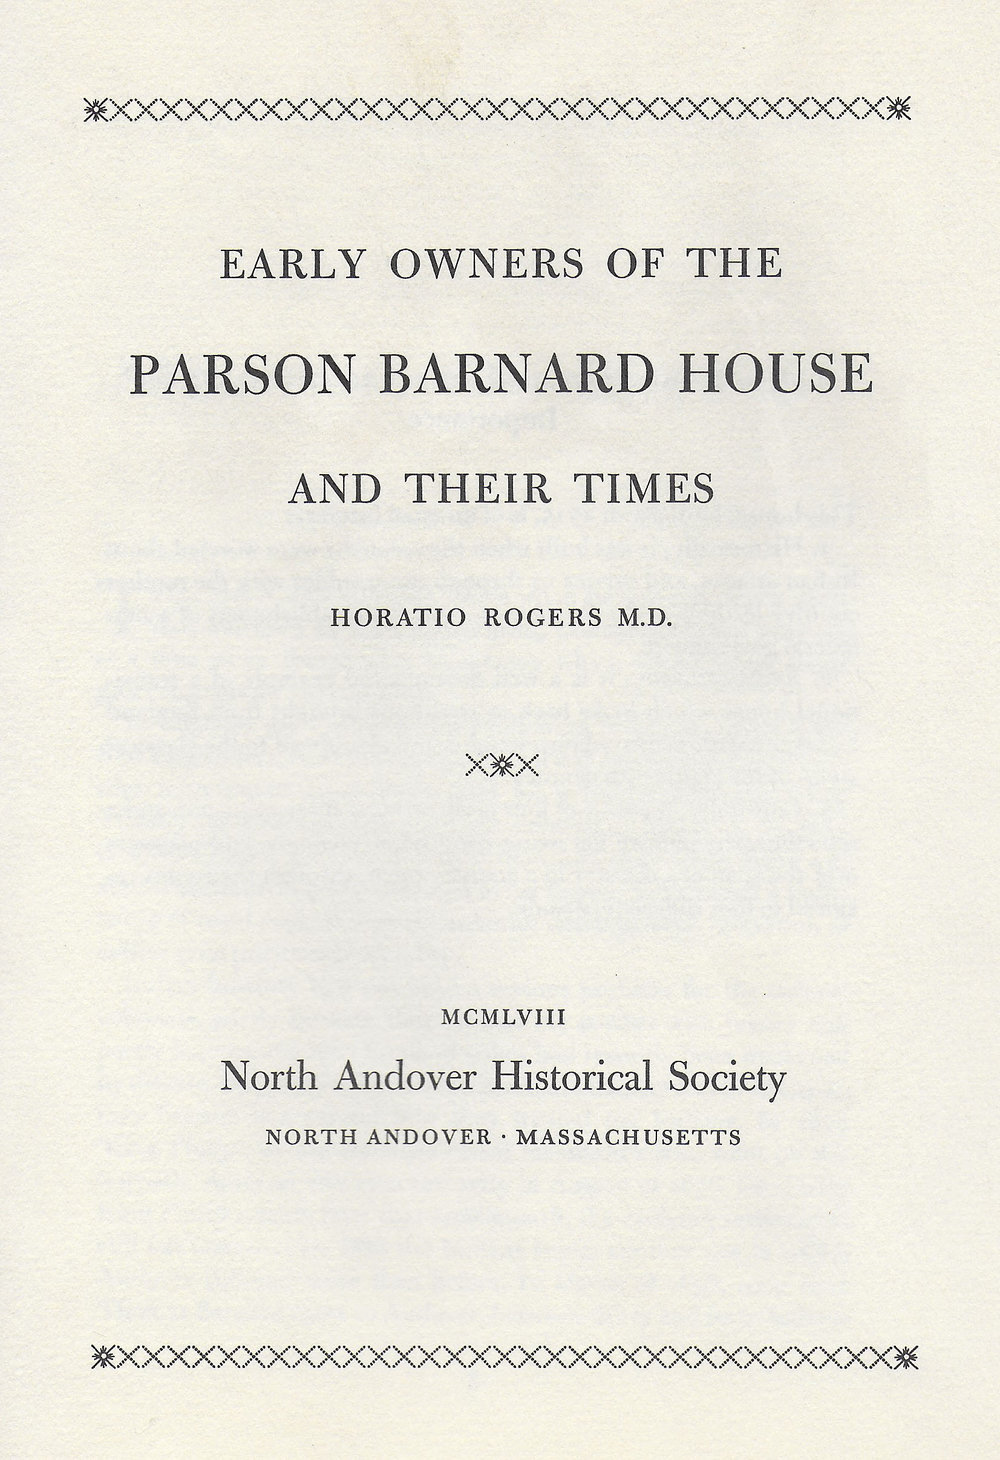 Early Owners of the Parson Barnard House & Their Times  by Horatio Rogers, M.D.